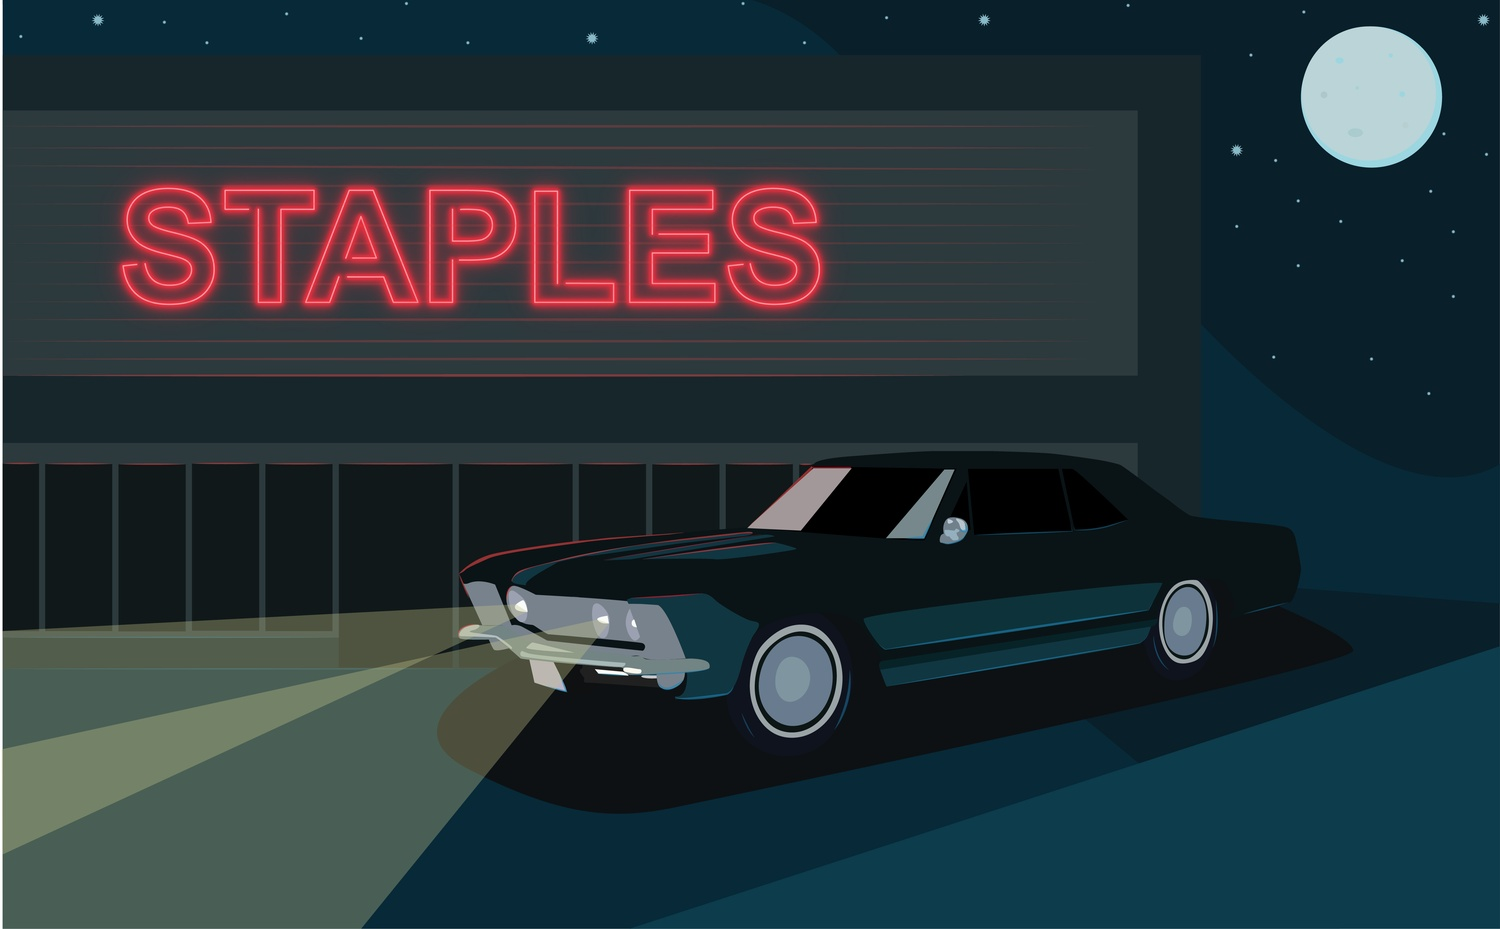 A car in front of Staples.